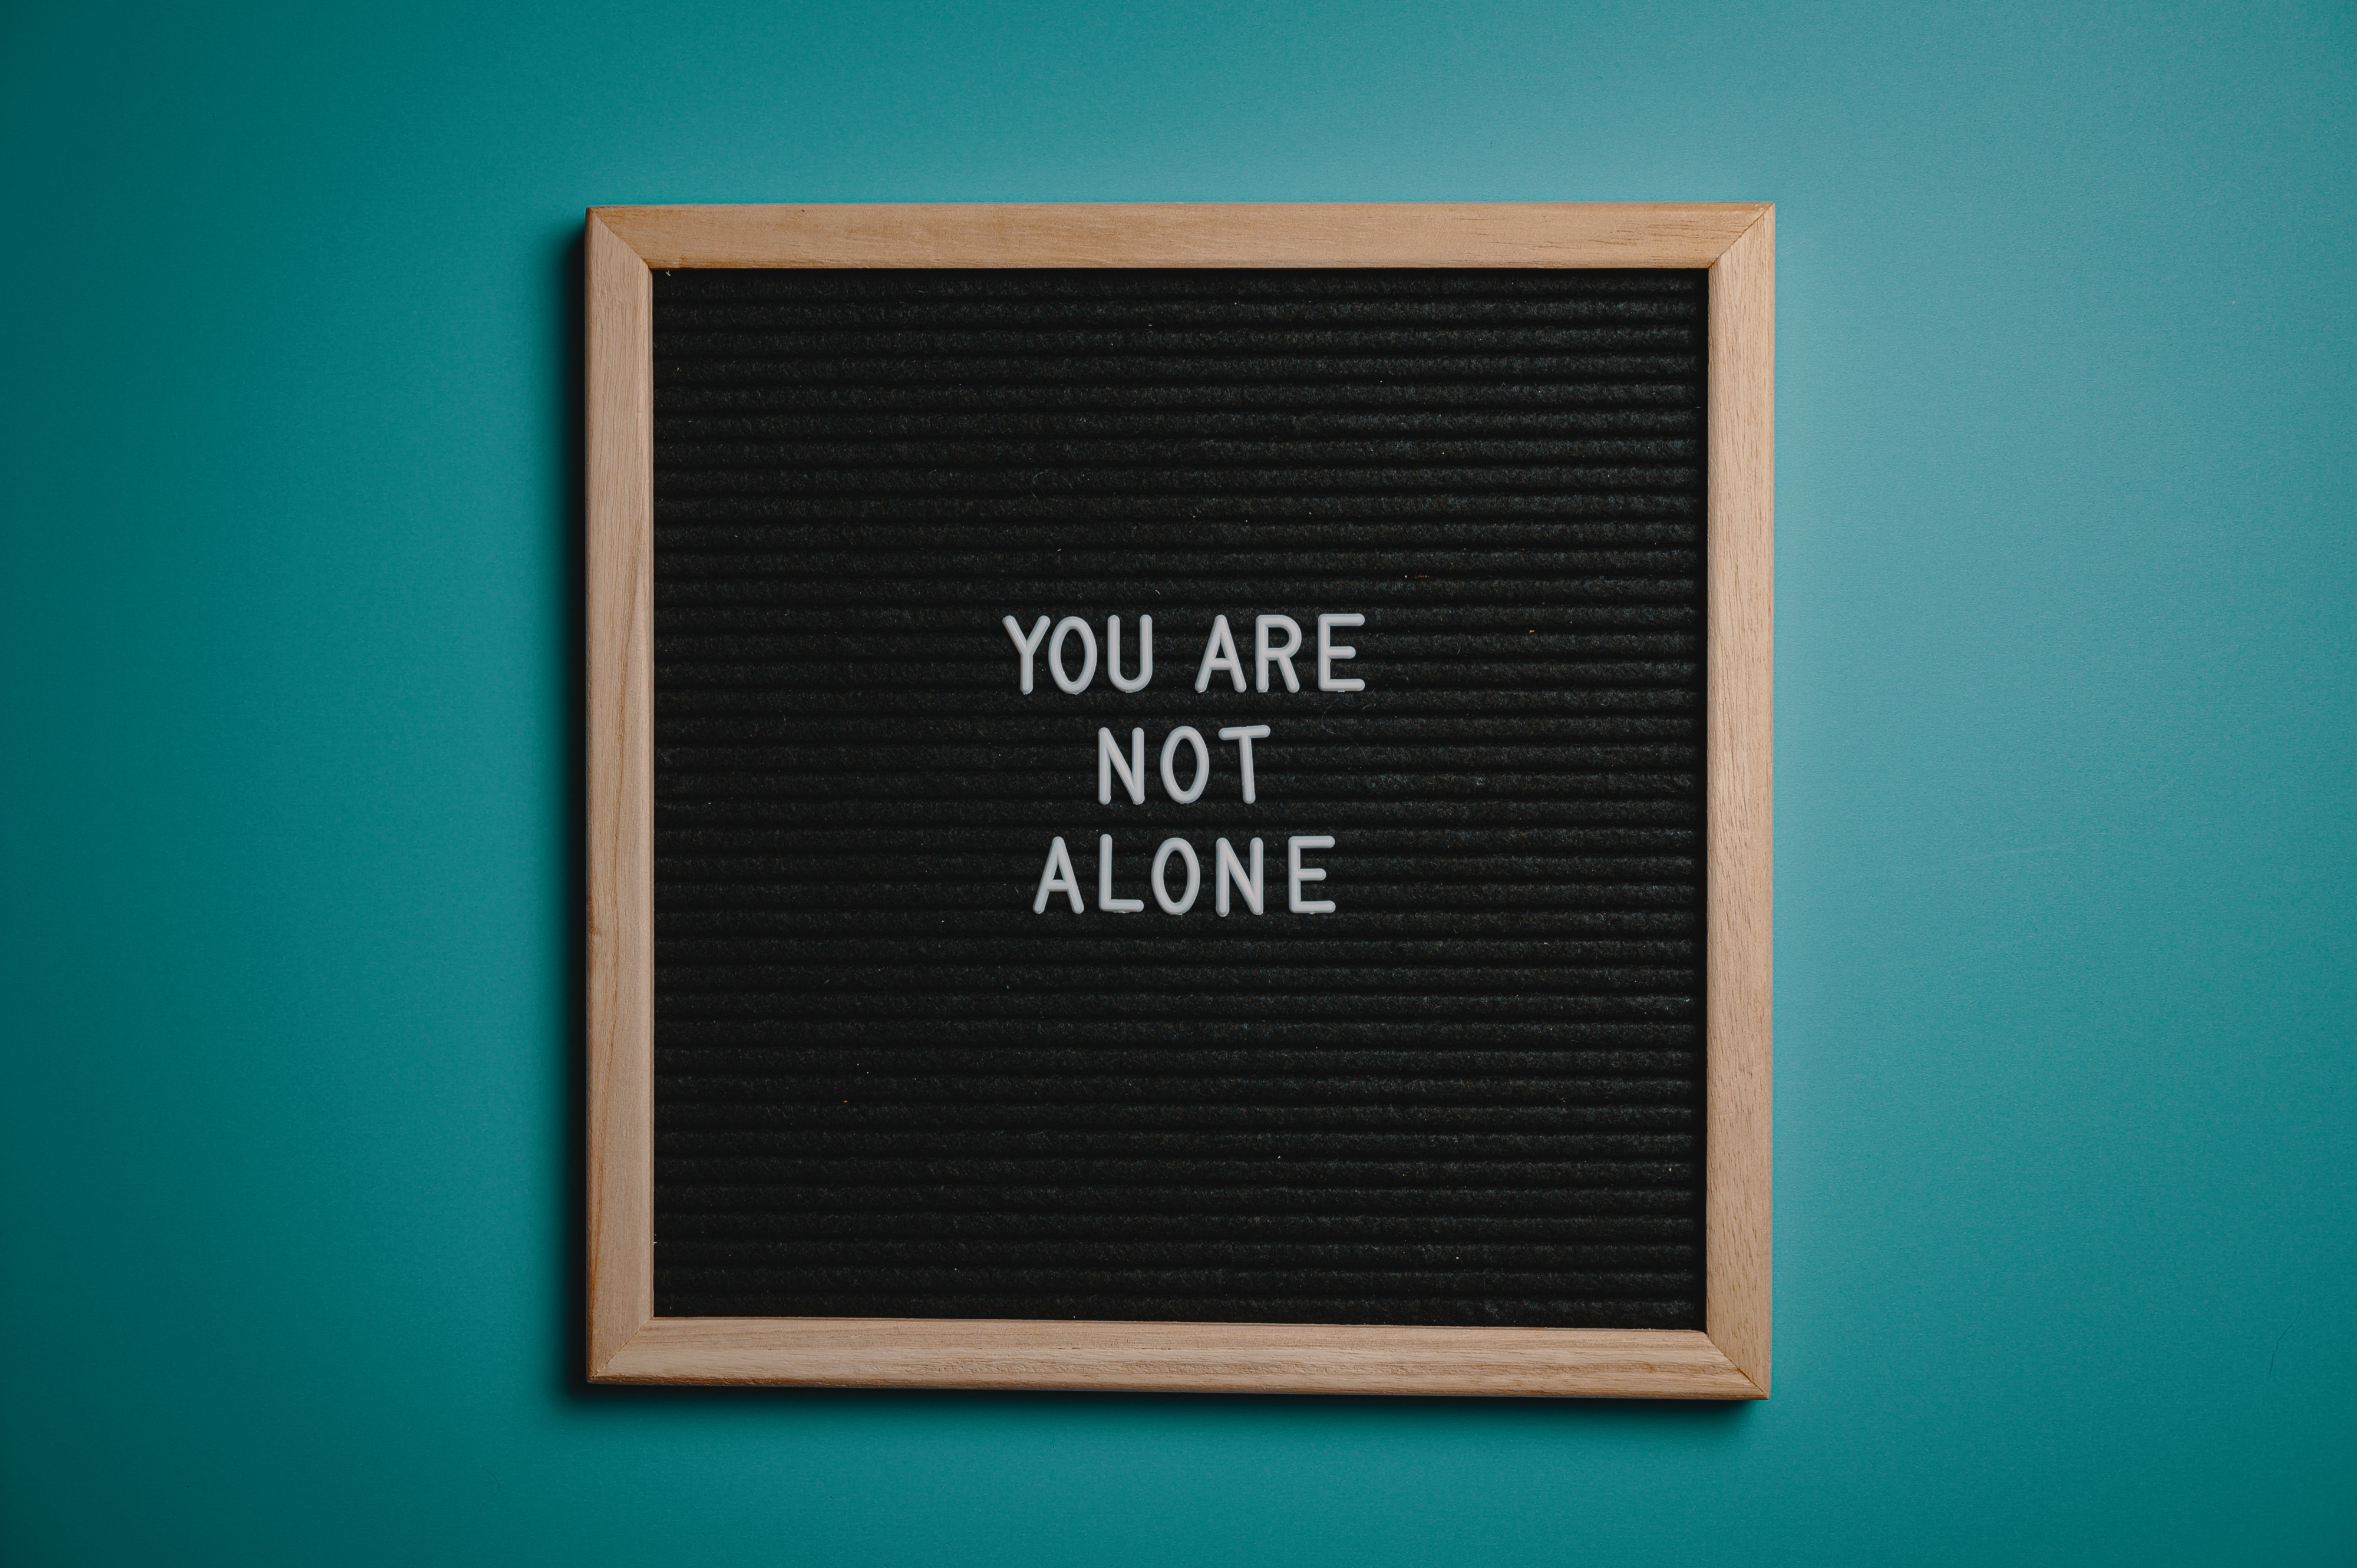 A word board with the phrase 'You Are Not Alone' written on it